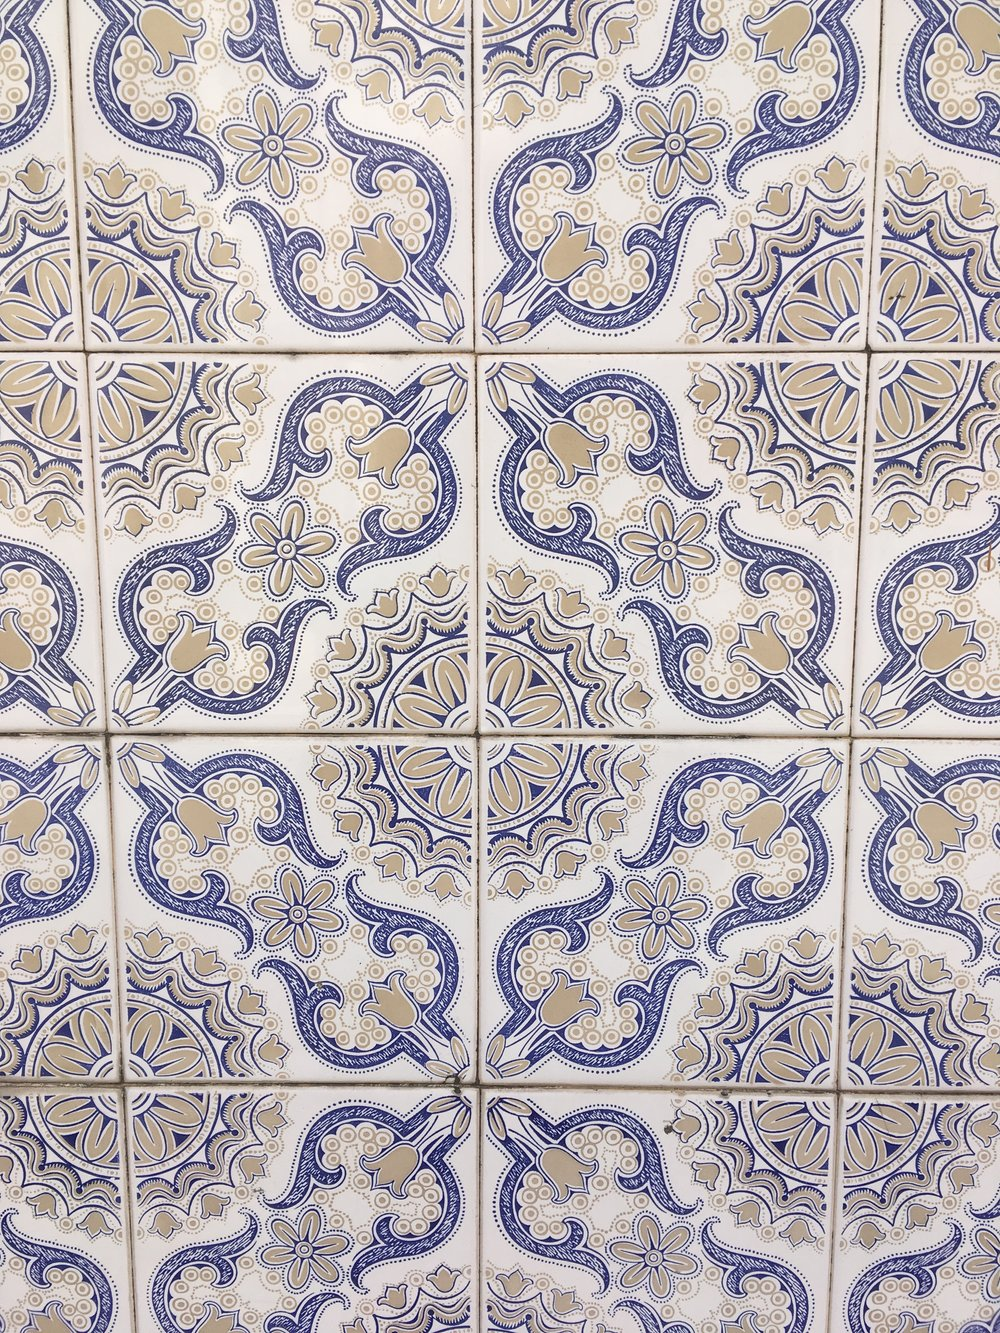 The tiles never get old